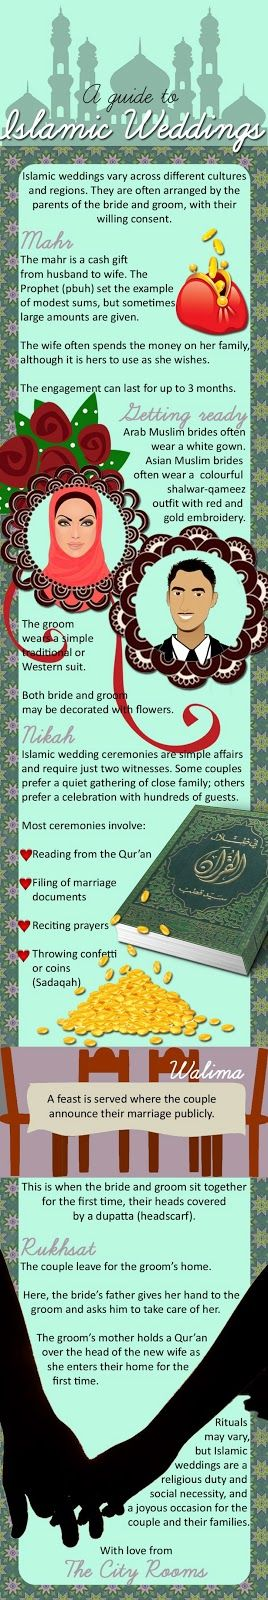 Muslim Wedding Infographic Repinned by IndianWeddingsMag #indianweddingsmag IndianWeddingsMag.com